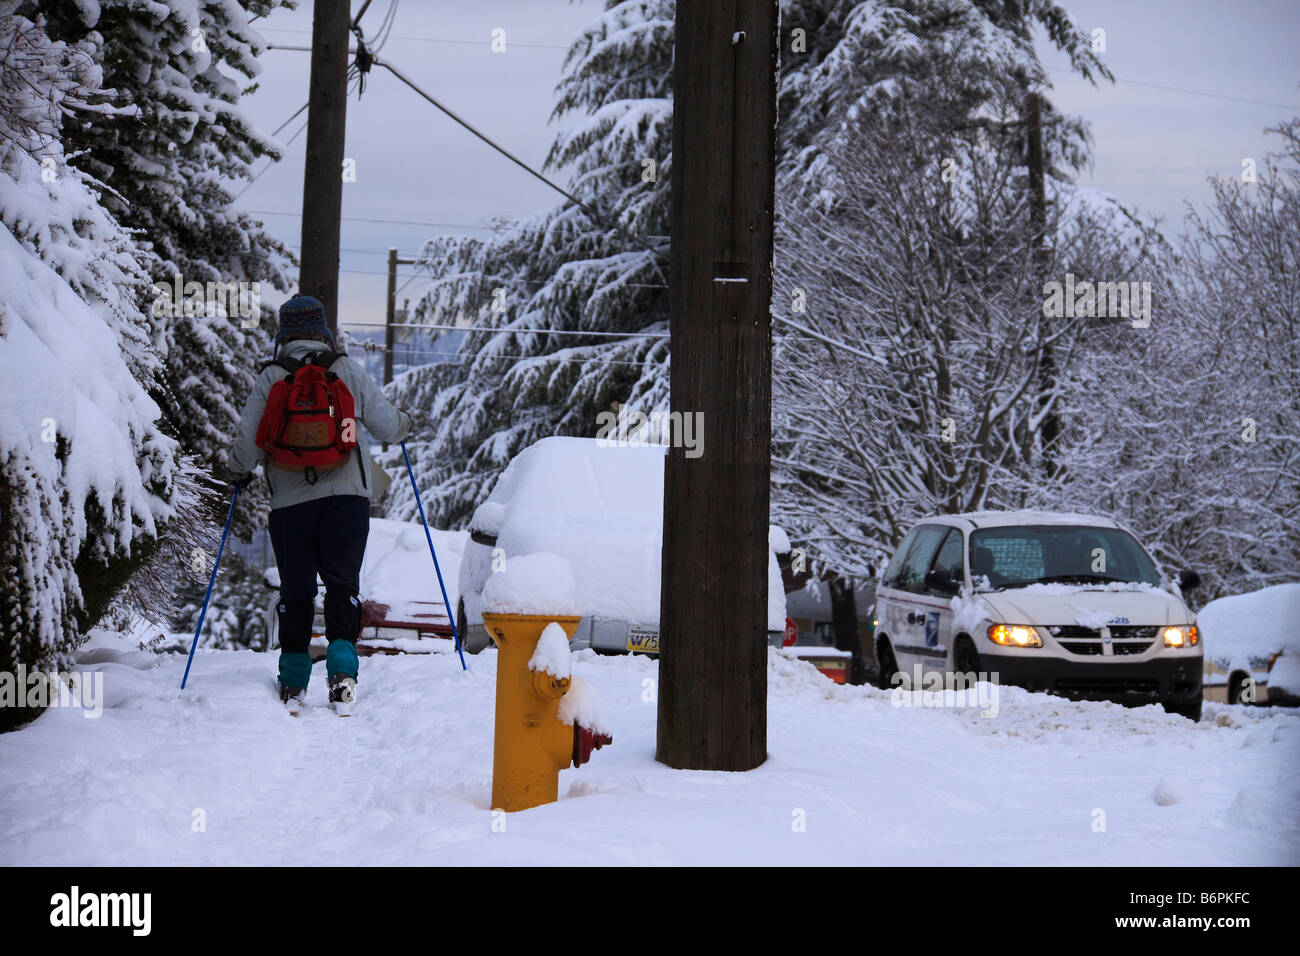 Woman using cross country skis in snow on Queen Anne Hill Seattle Washington Stock Photo